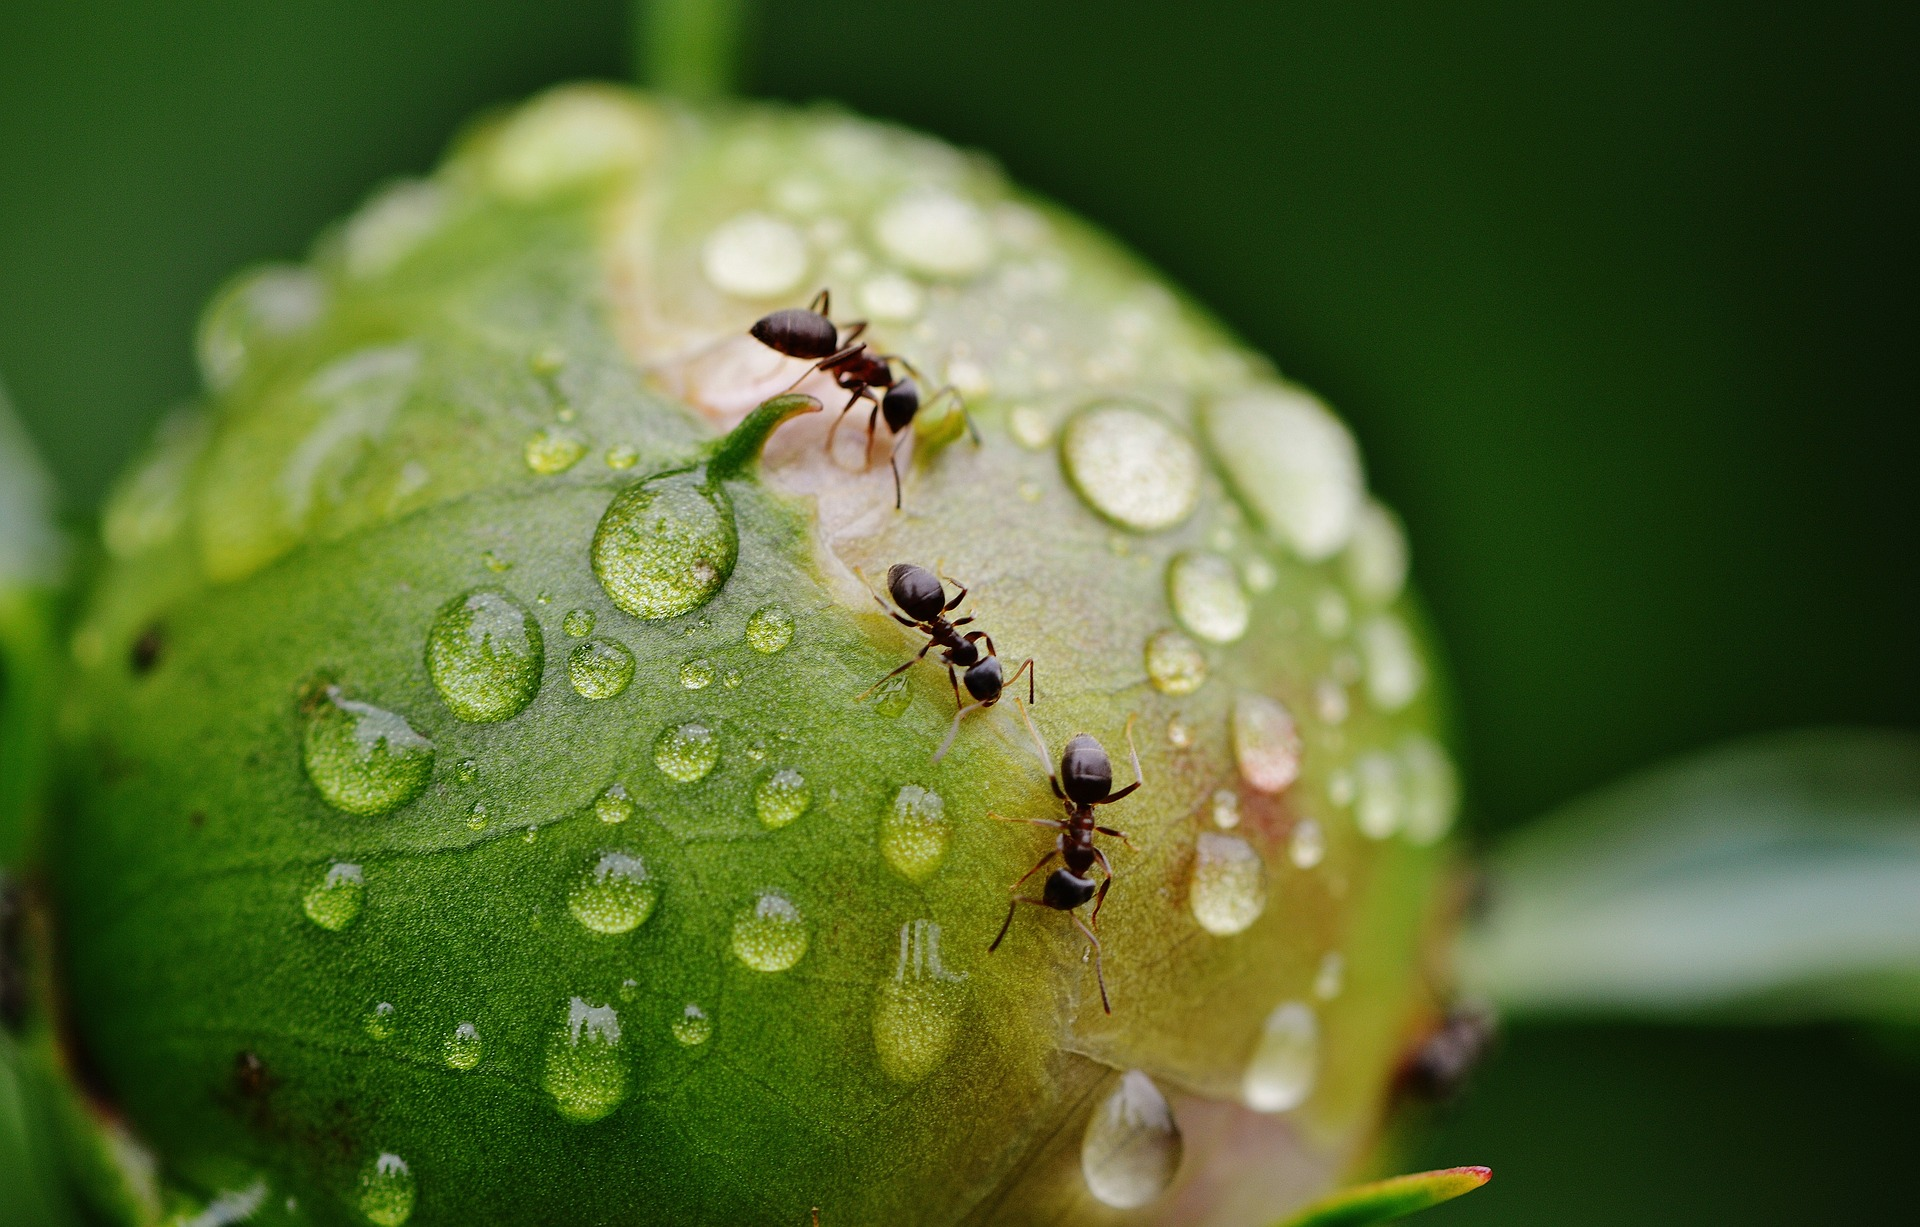 Ants will not cause any harm to peony blooms